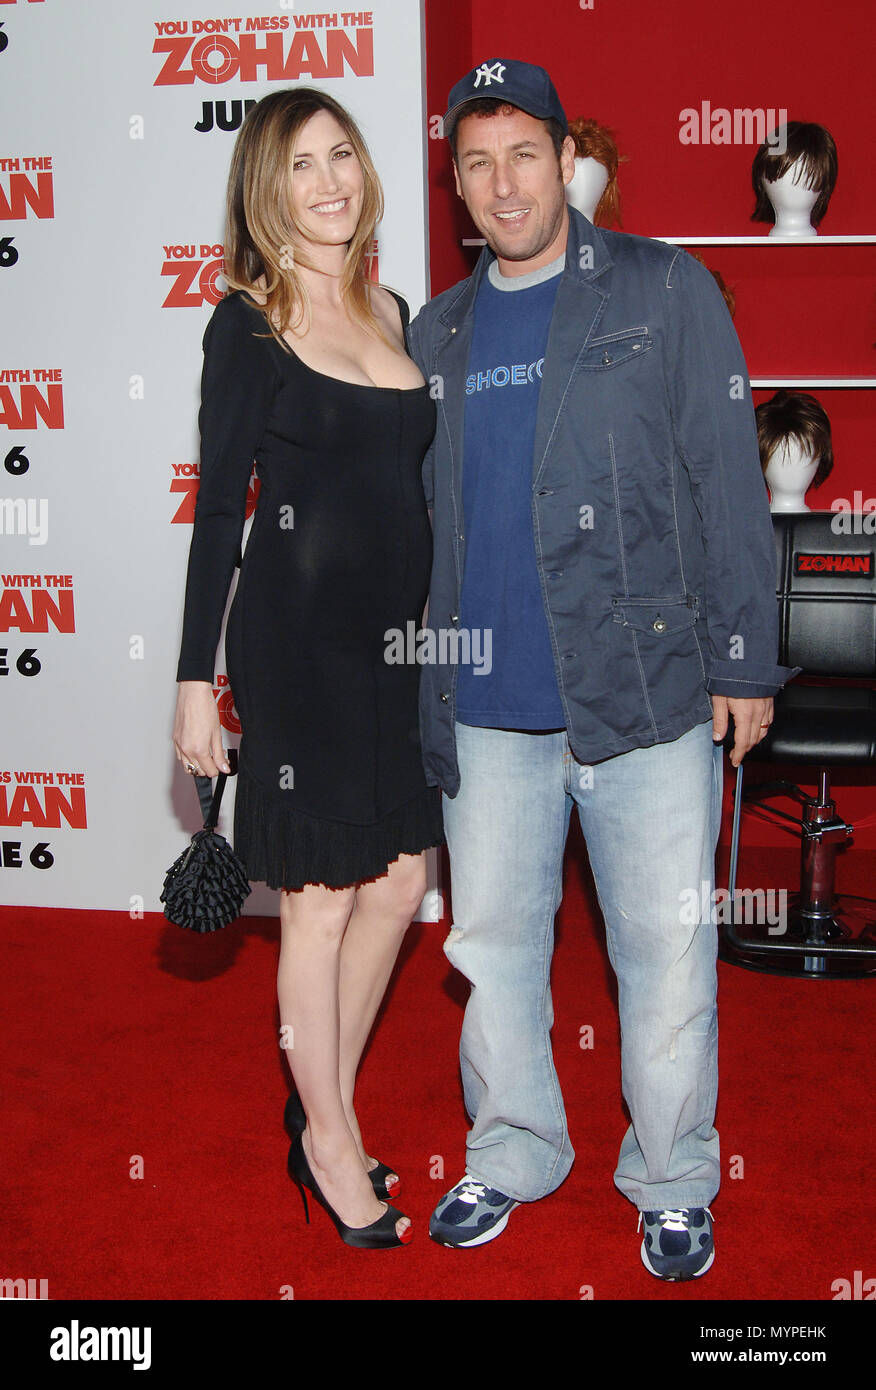 Adam Sandler and wife - You Don't Mess With ZOHAN Premiere